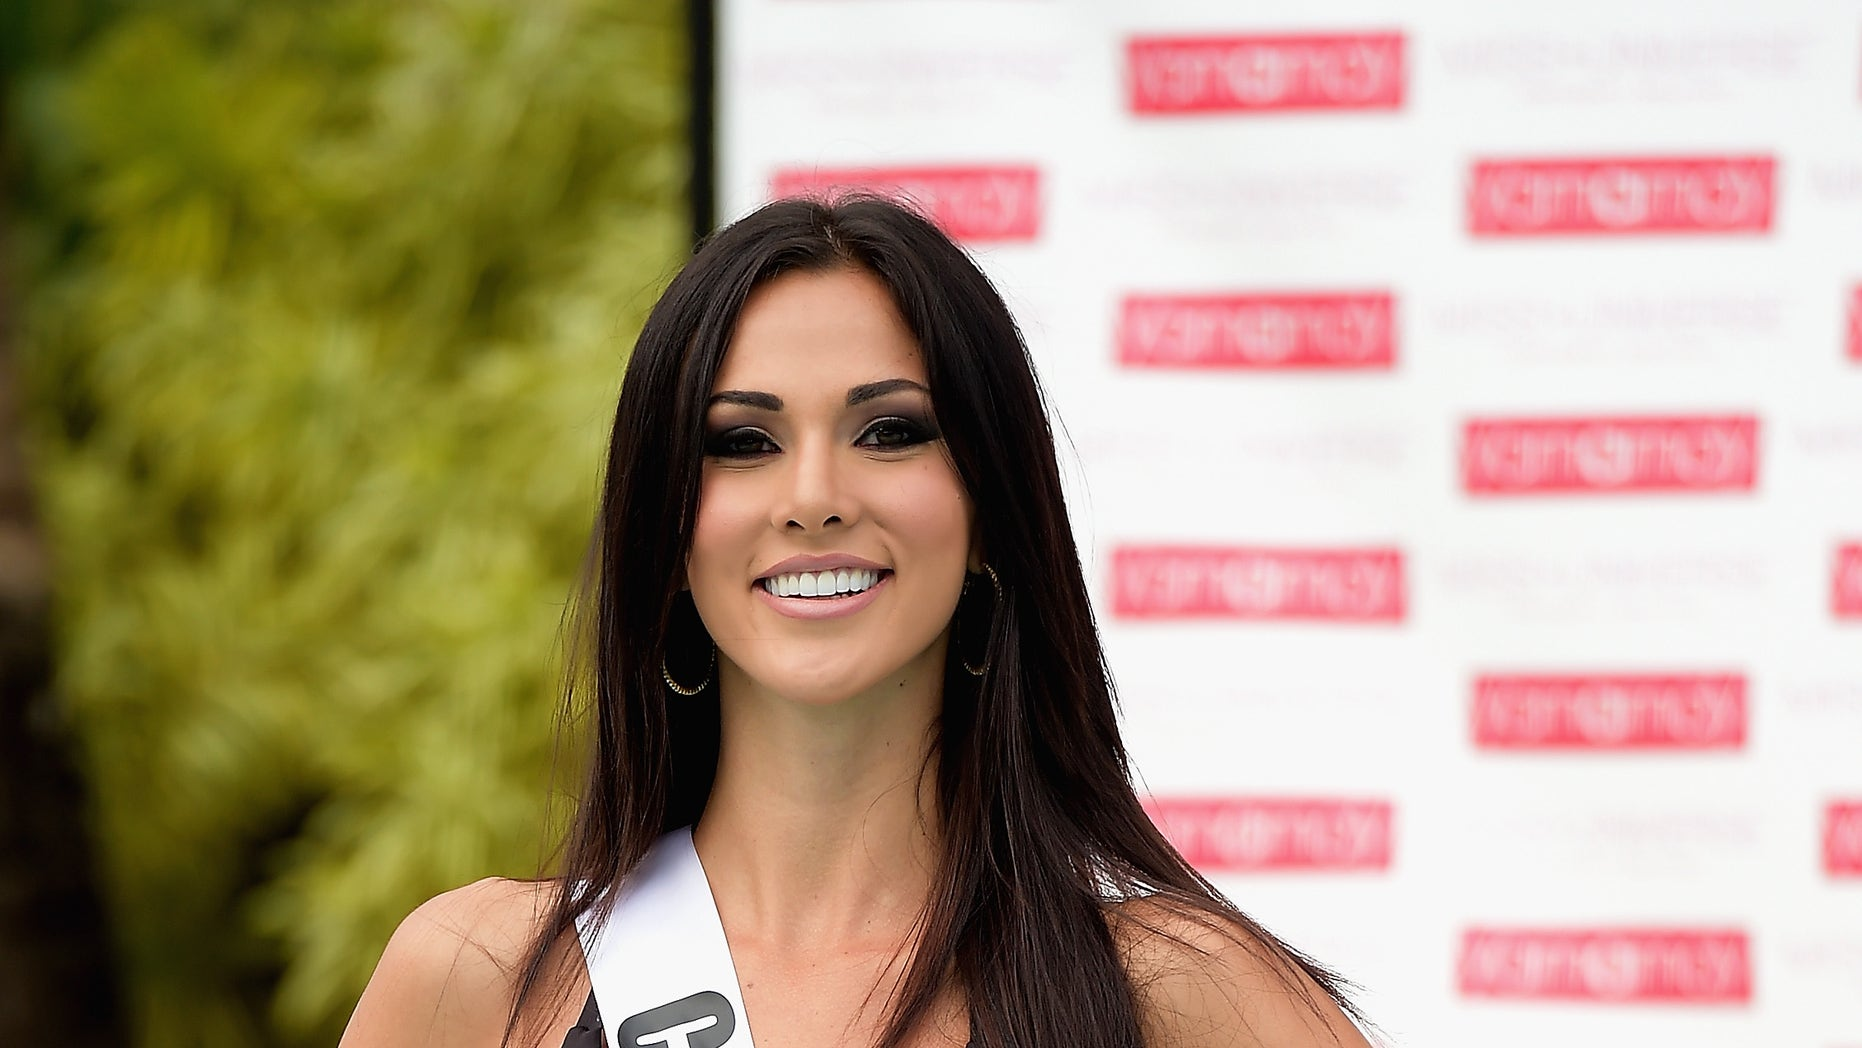 DORAL, FL - JANUARY 14:  Miss Costa Rica  Karina Ramos  participates in Miss Universe - Yamamay Swimsuit Runway Show at Trump National Doral on January 14, 2015 in Doral, Florida.  (Photo by Gustavo Caballero/Getty Images)